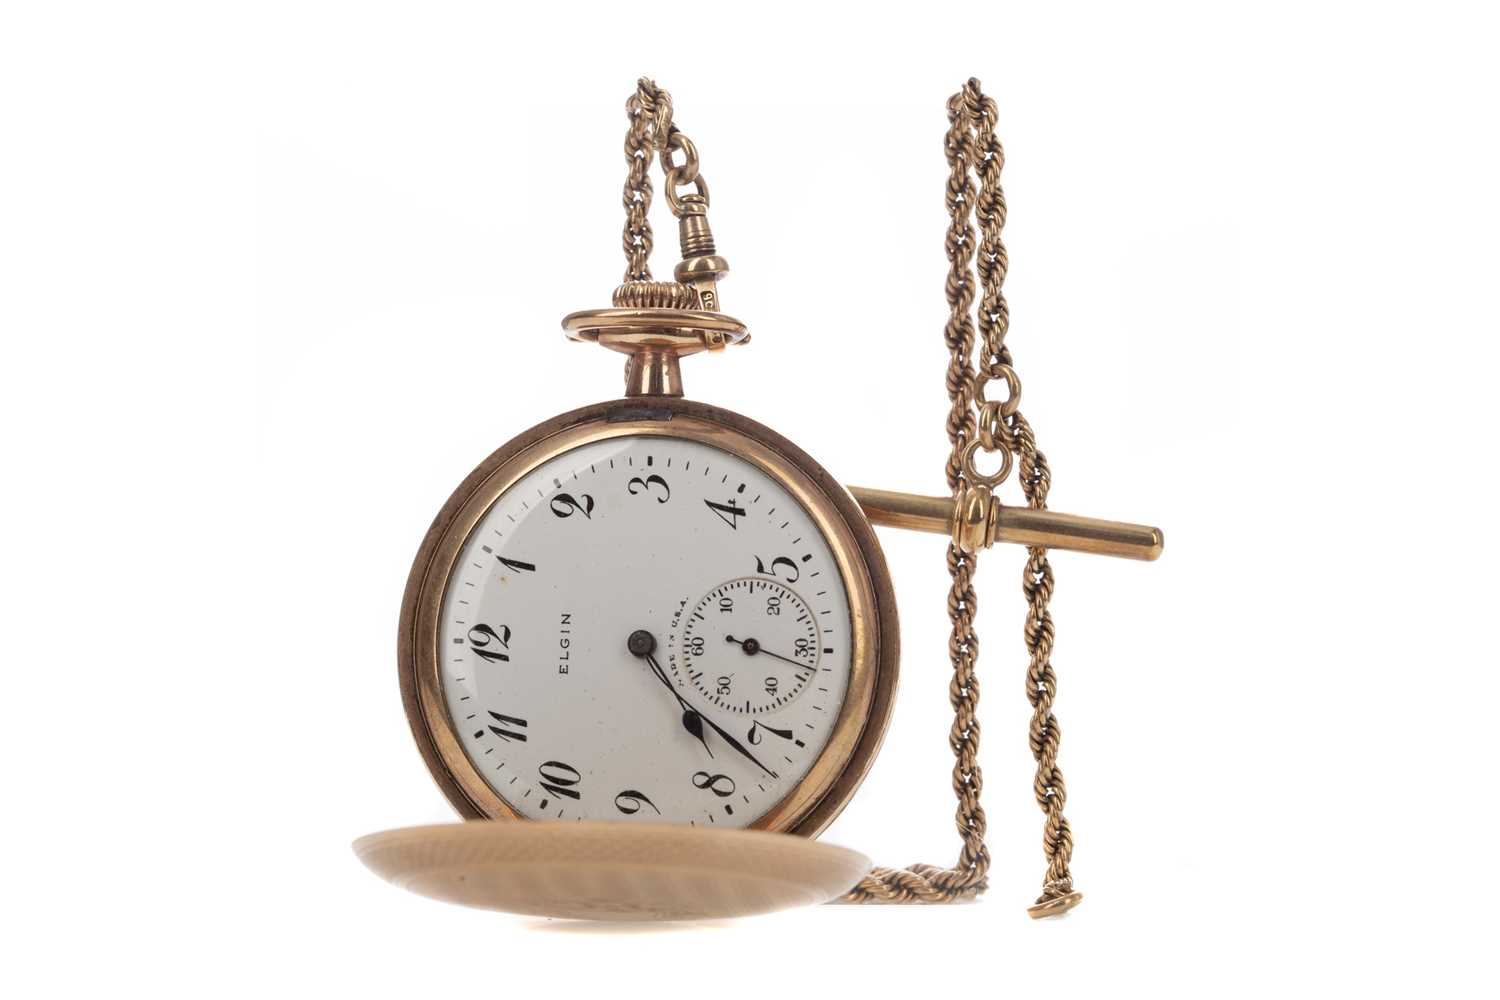 A GOLD PLATED ELGIN POCKET WATCH AND A GOLD WATCH CHAIN - Image 2 of 6